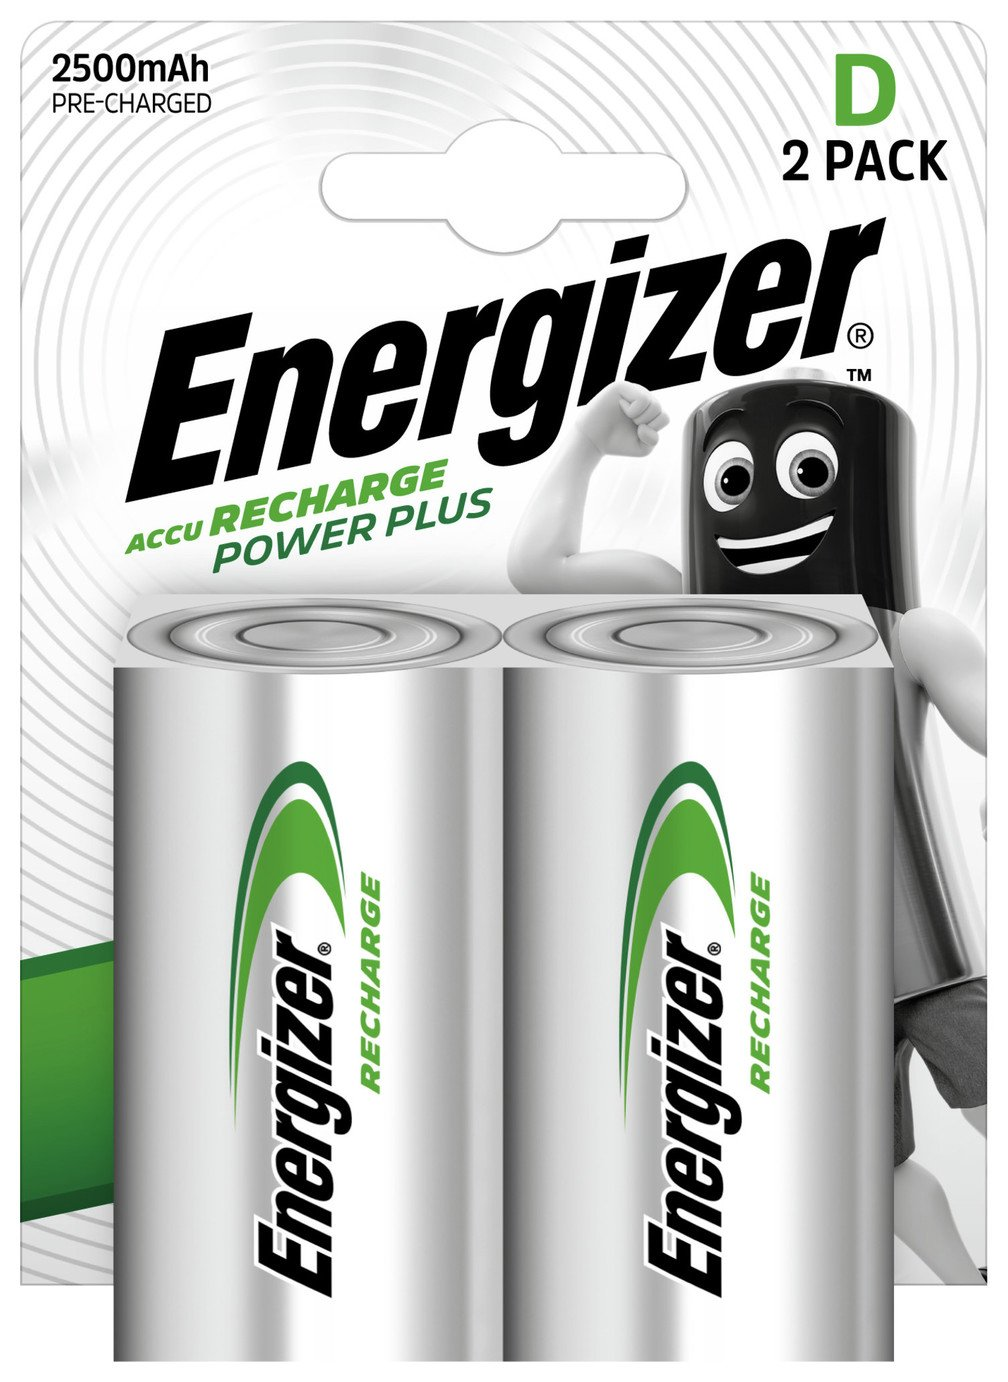 Accu Rechargeable Ean 7638900138757 Energizer Accu Rechargeable D Battery Twin